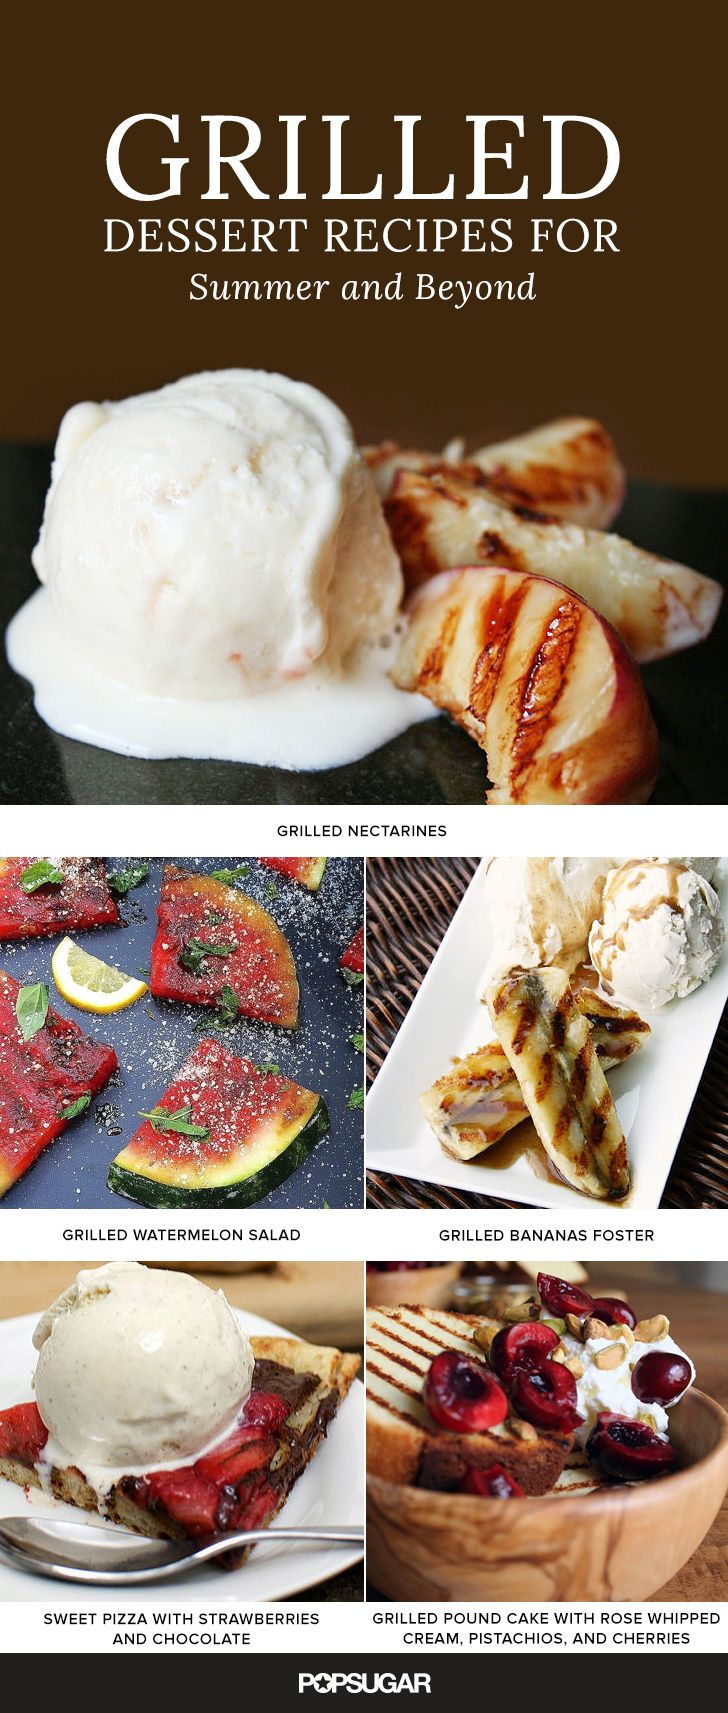 It's almost Summer and your grill is fired up and ready to go, so why not throw on a few of your favorite sweet treats? Hold the steak and grab a few watermelons because dessert is about to get a grilled makeover. We've rounded up a few recipes to get you started!